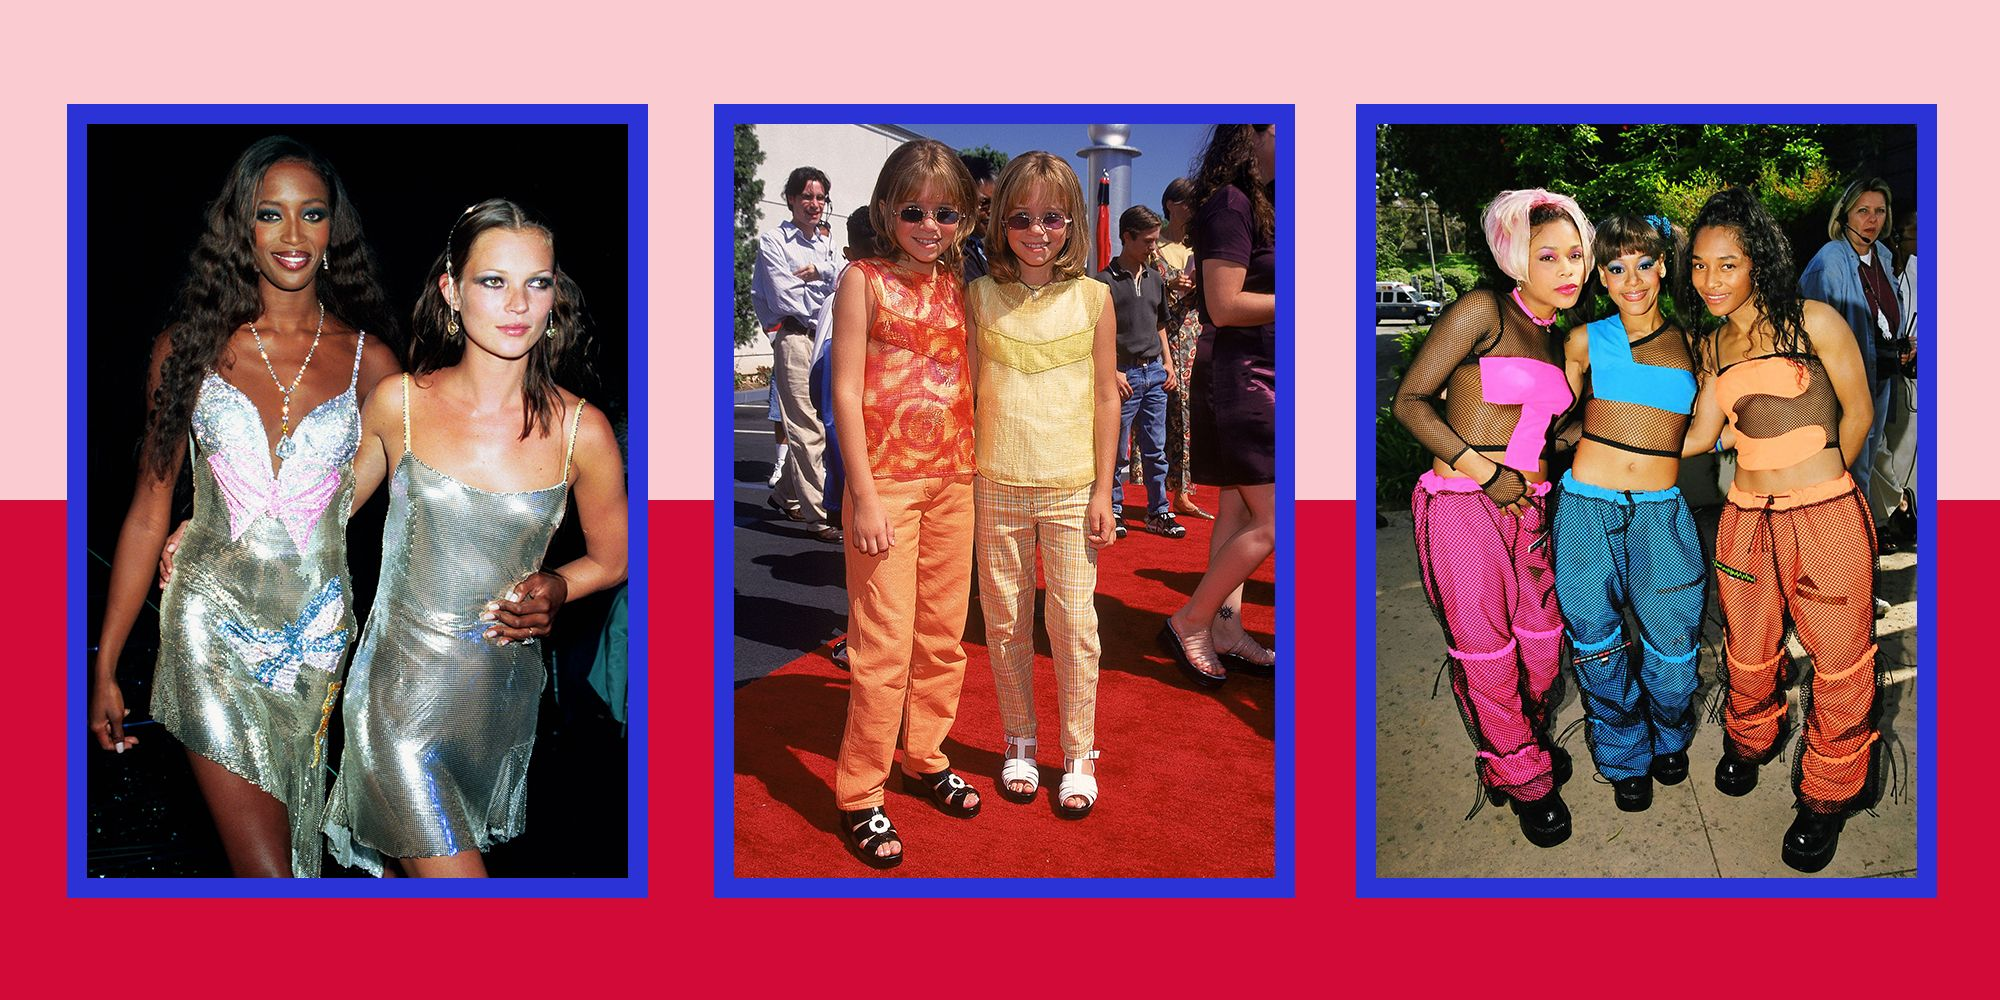 1990s early fashion trends forecast to wear for everyday in 2019